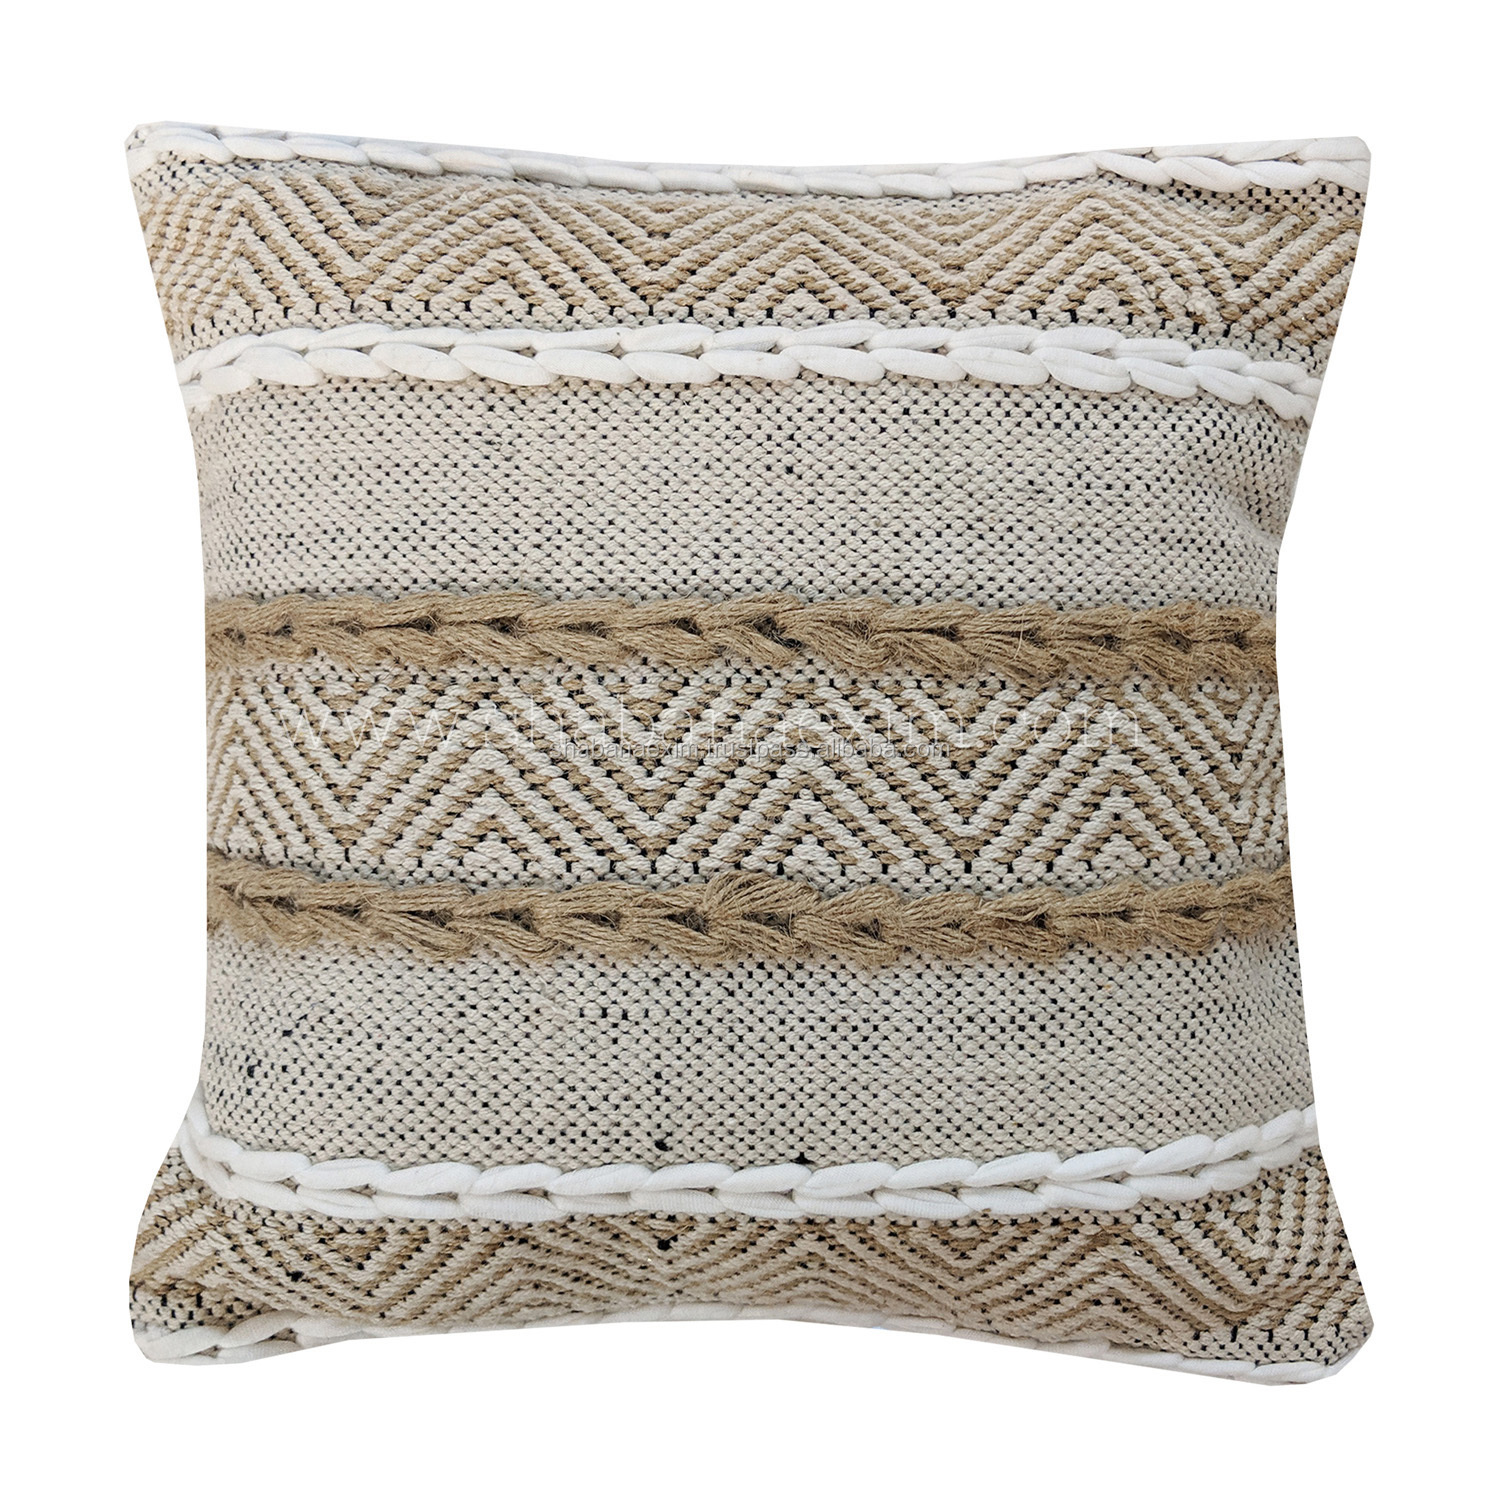 moroccan cushion cover multicolor sofa pillow covers woven cushion cover view sofa seat cushion covers buyer s brand label product details from